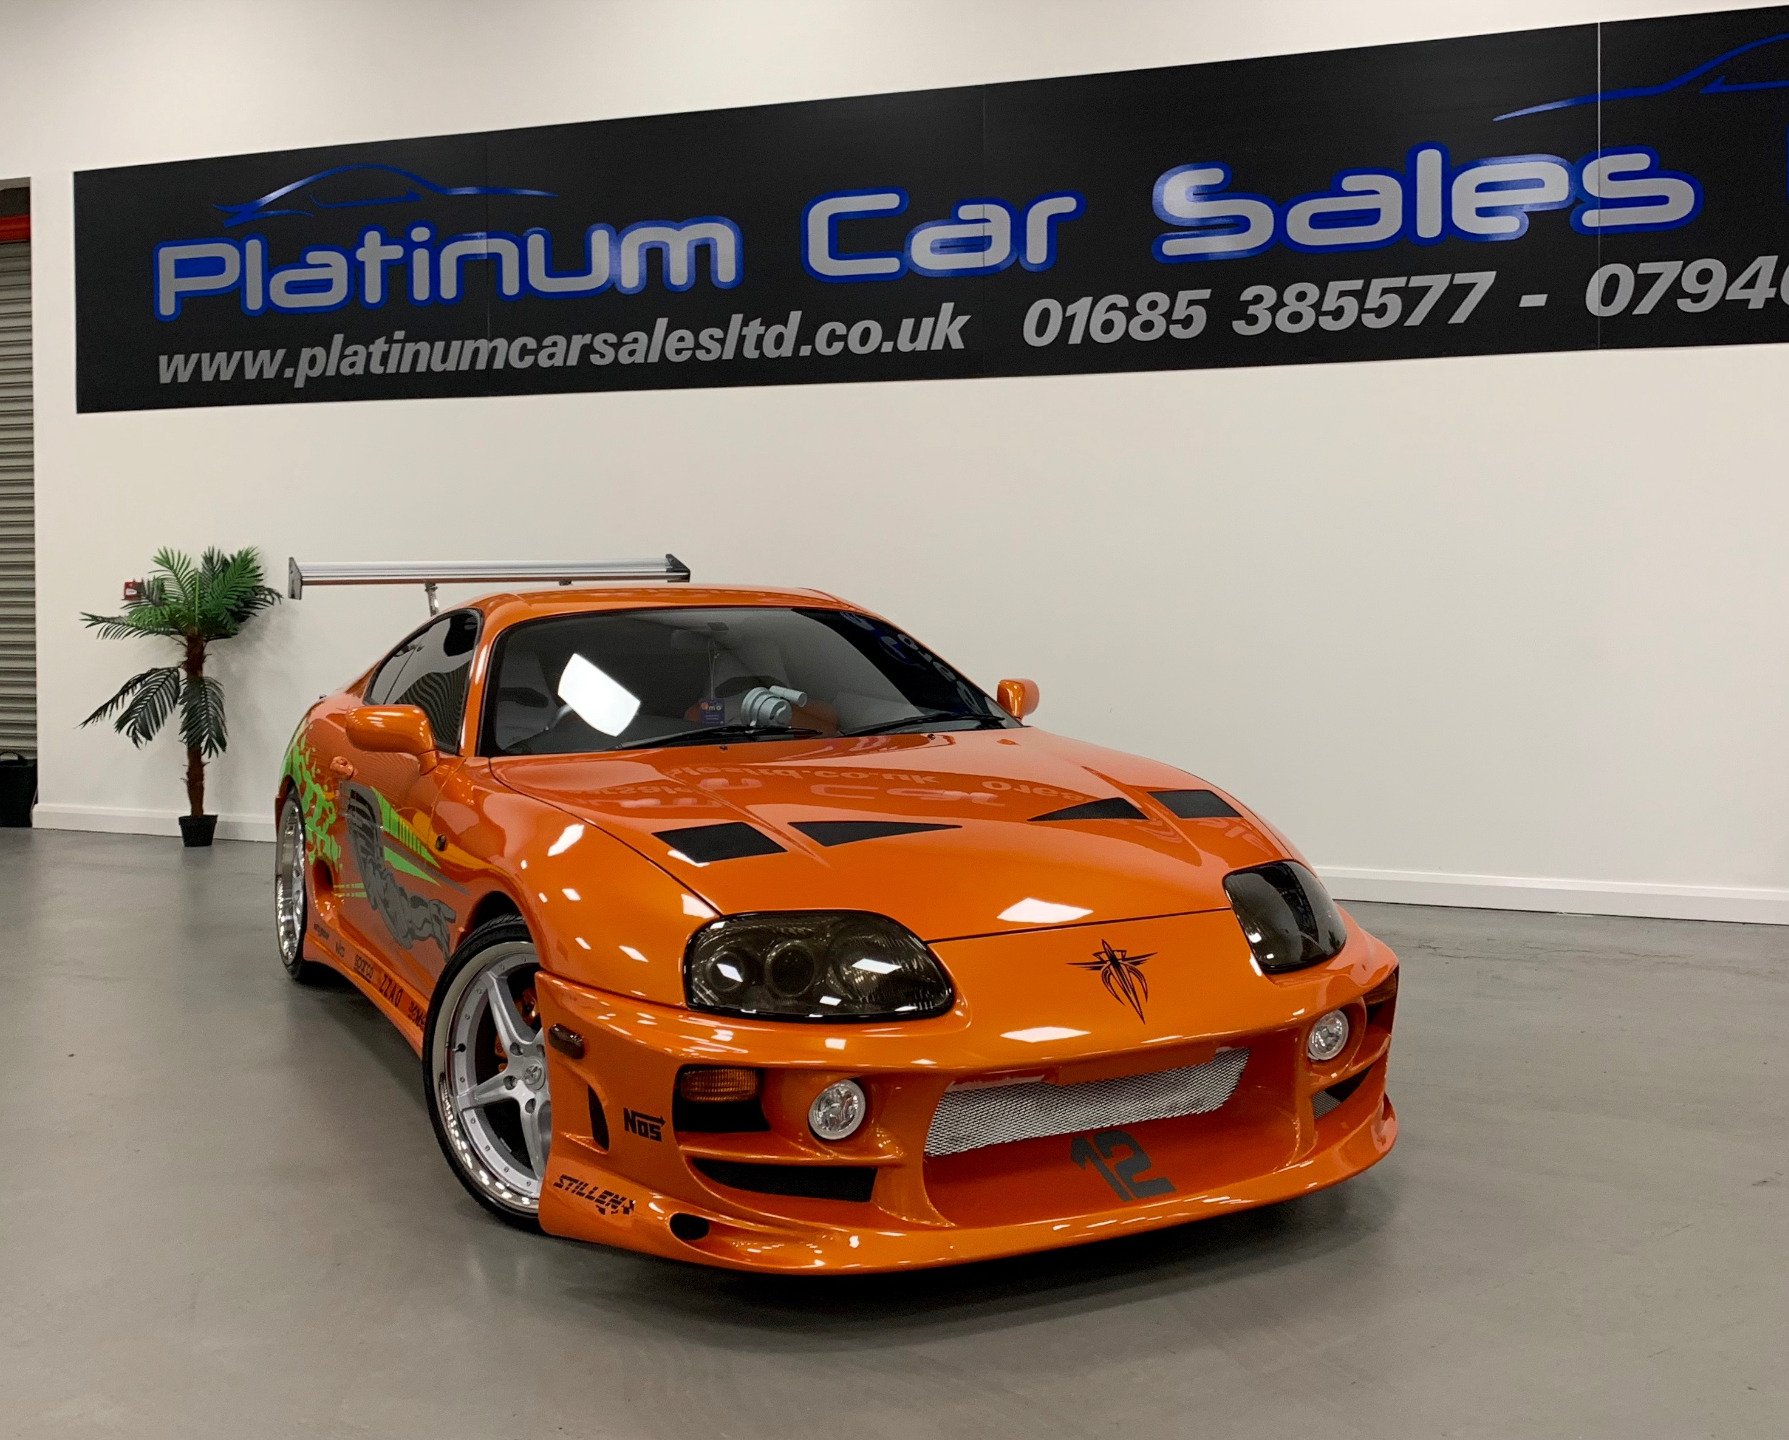 Toyota Supra From The Fast And The Furious Used Toyota Supra 2jz The Fast And The Furious Orange 3 Coupe